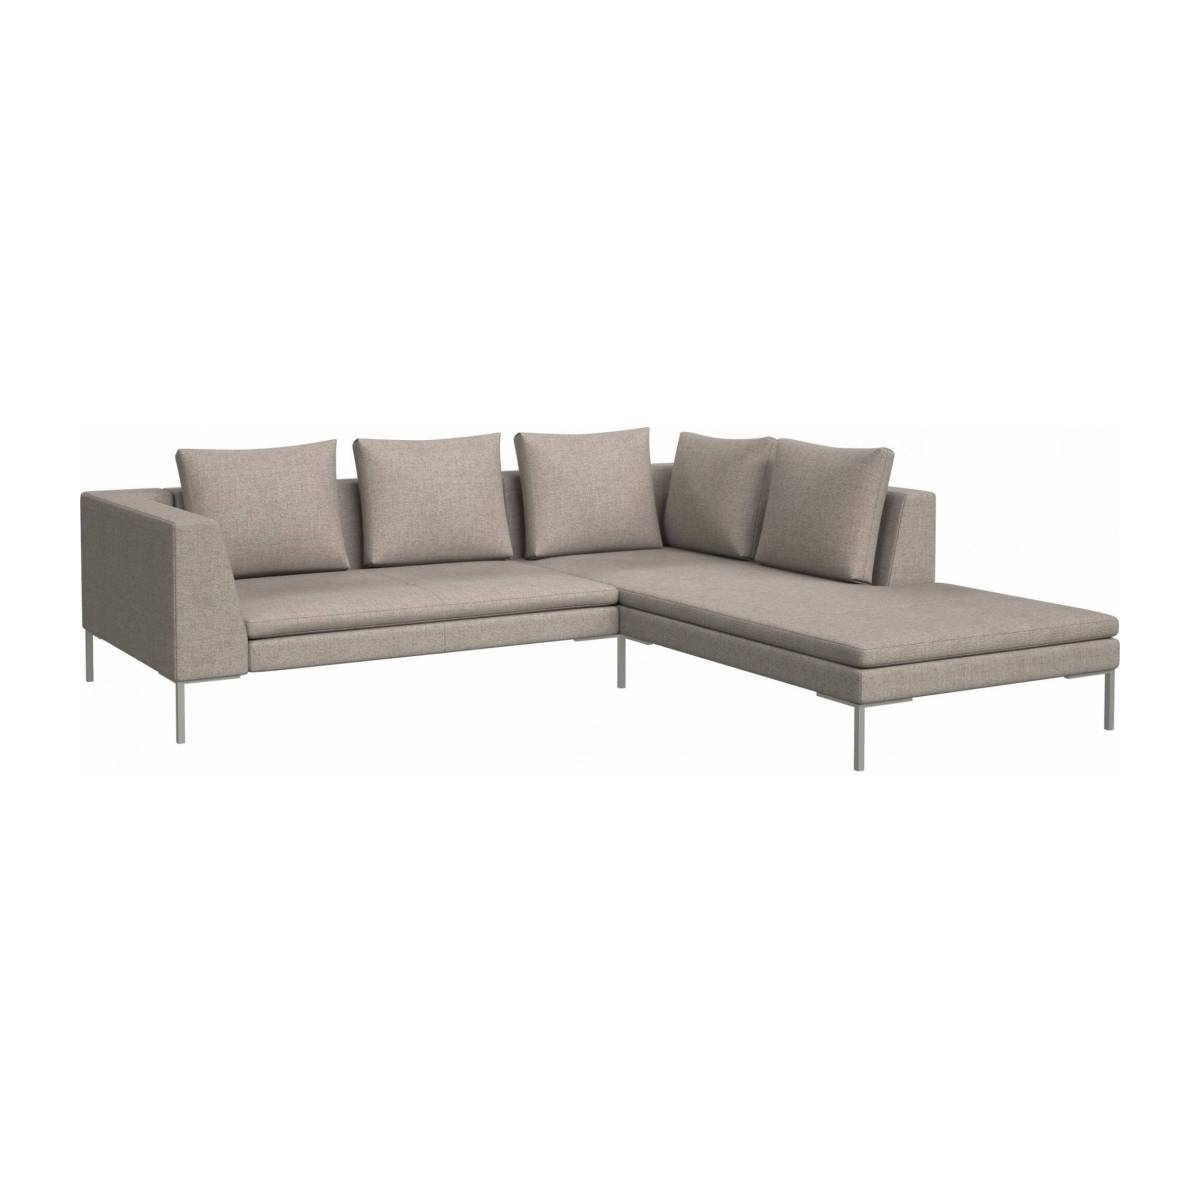 2 seater sofa with chaise longue on the right in Lecce fabric, nature  n°2